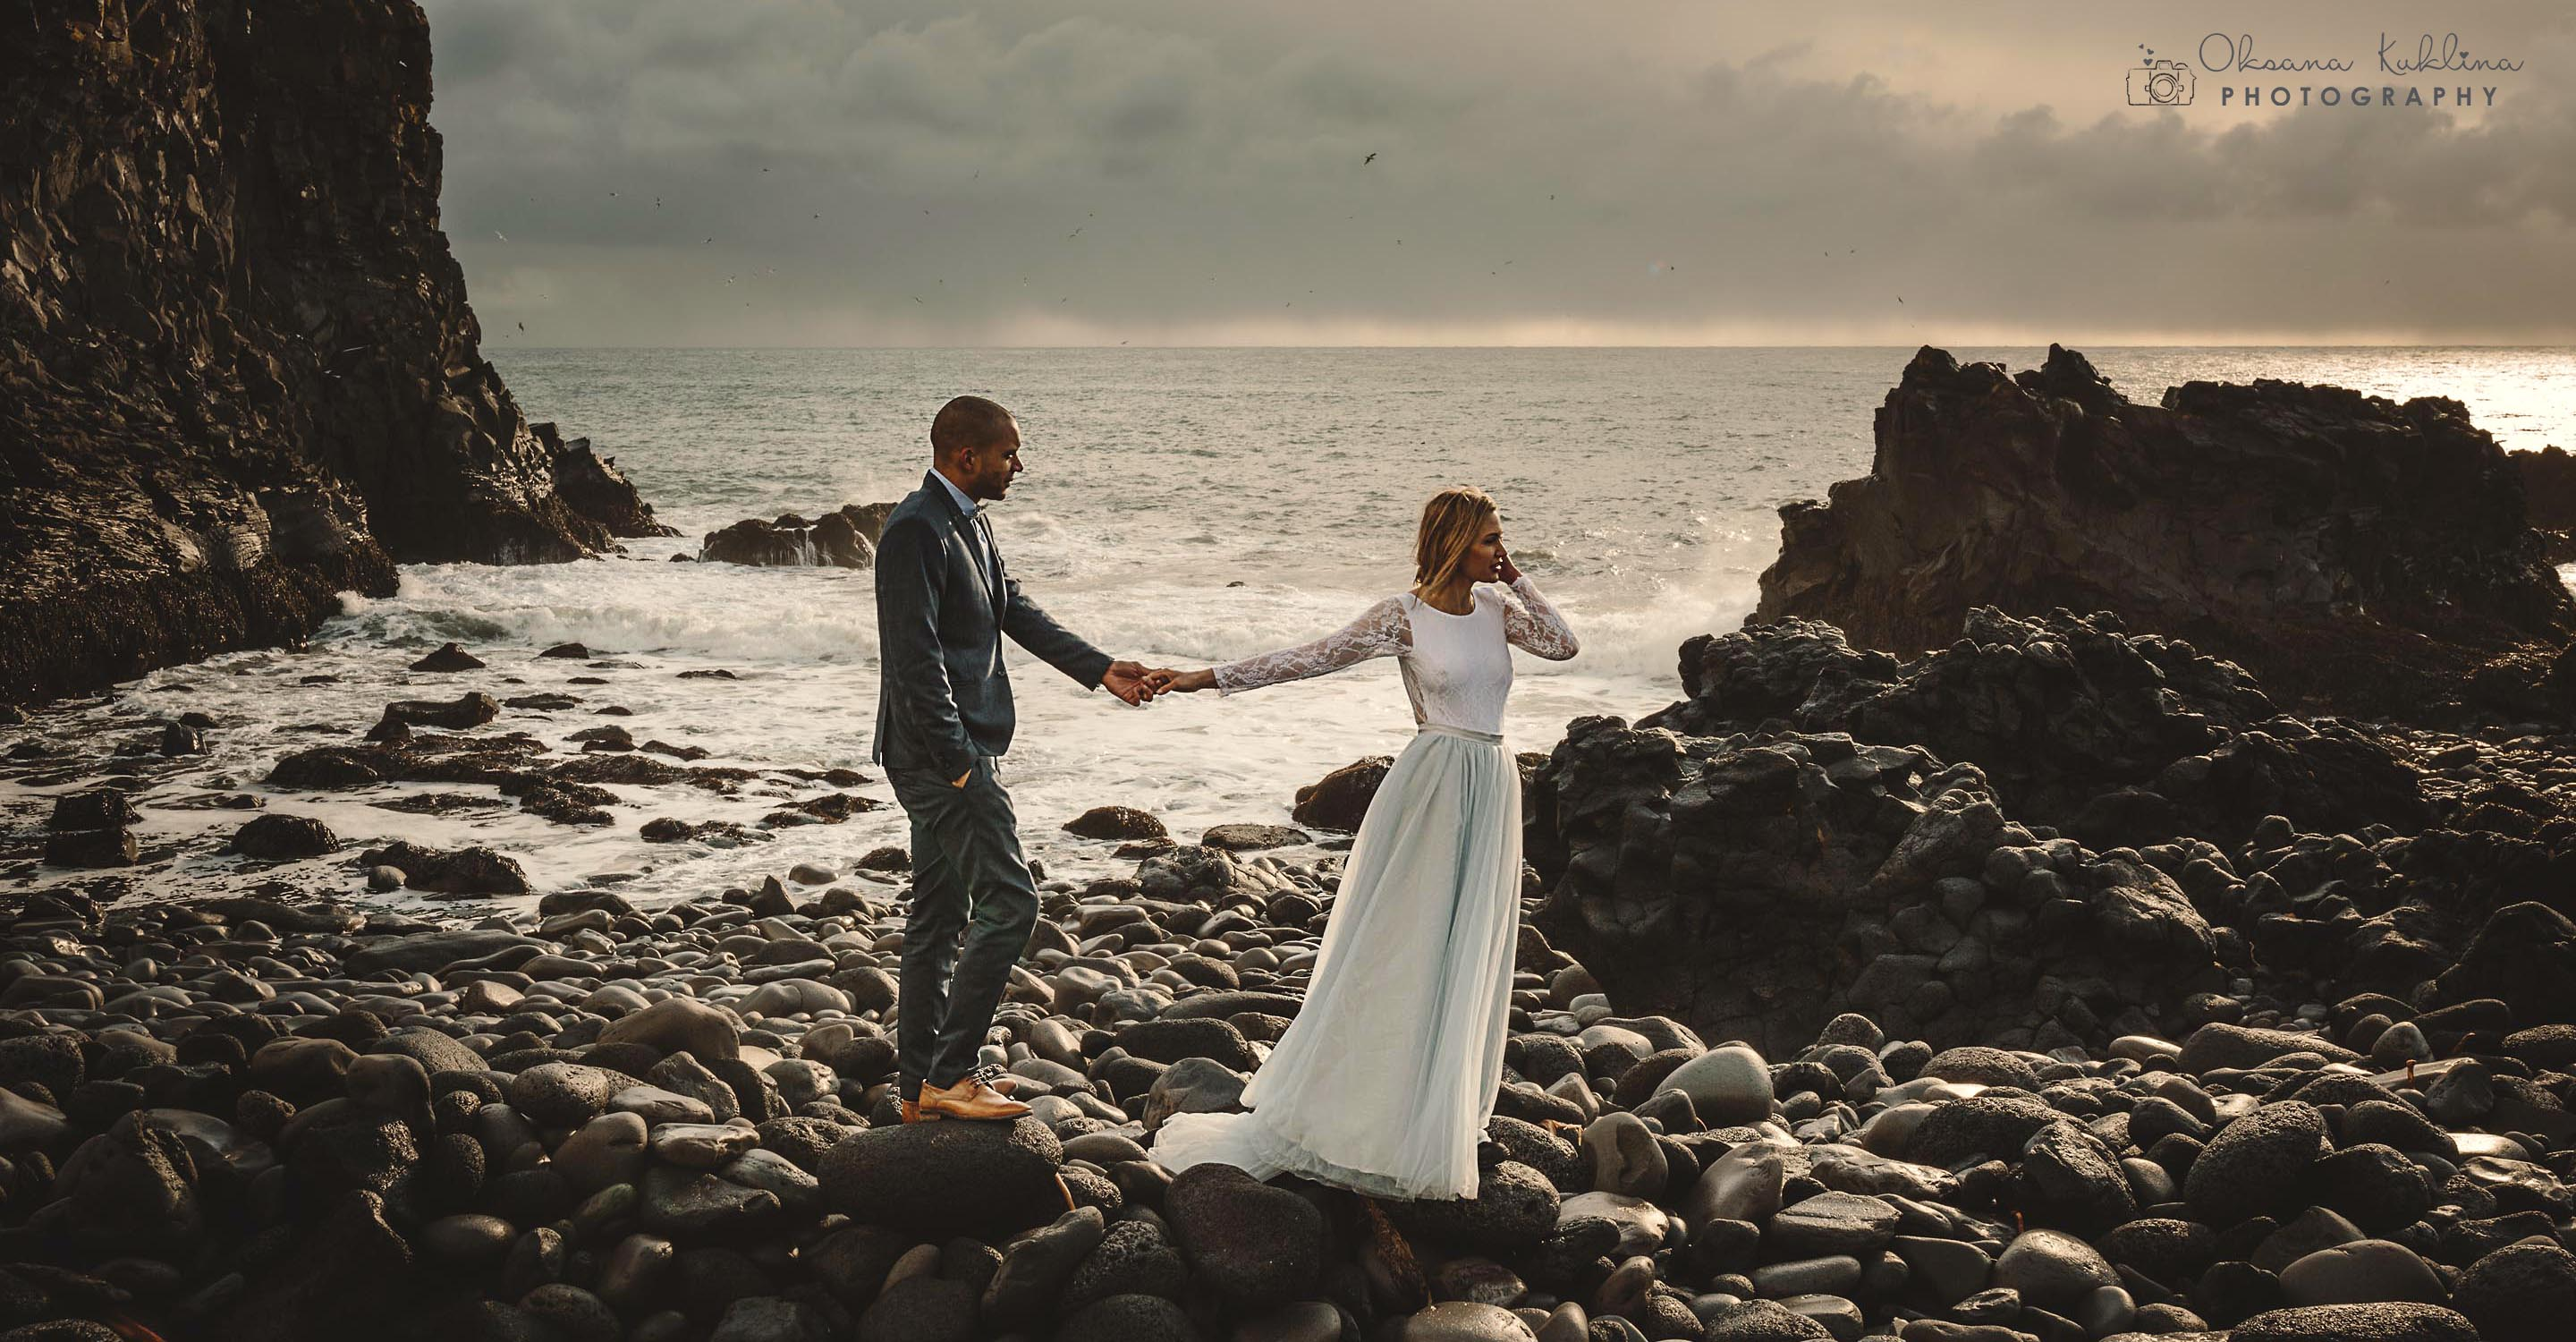 Iceland Elopement Photographer - Iceland Adventure - Destination Photographer